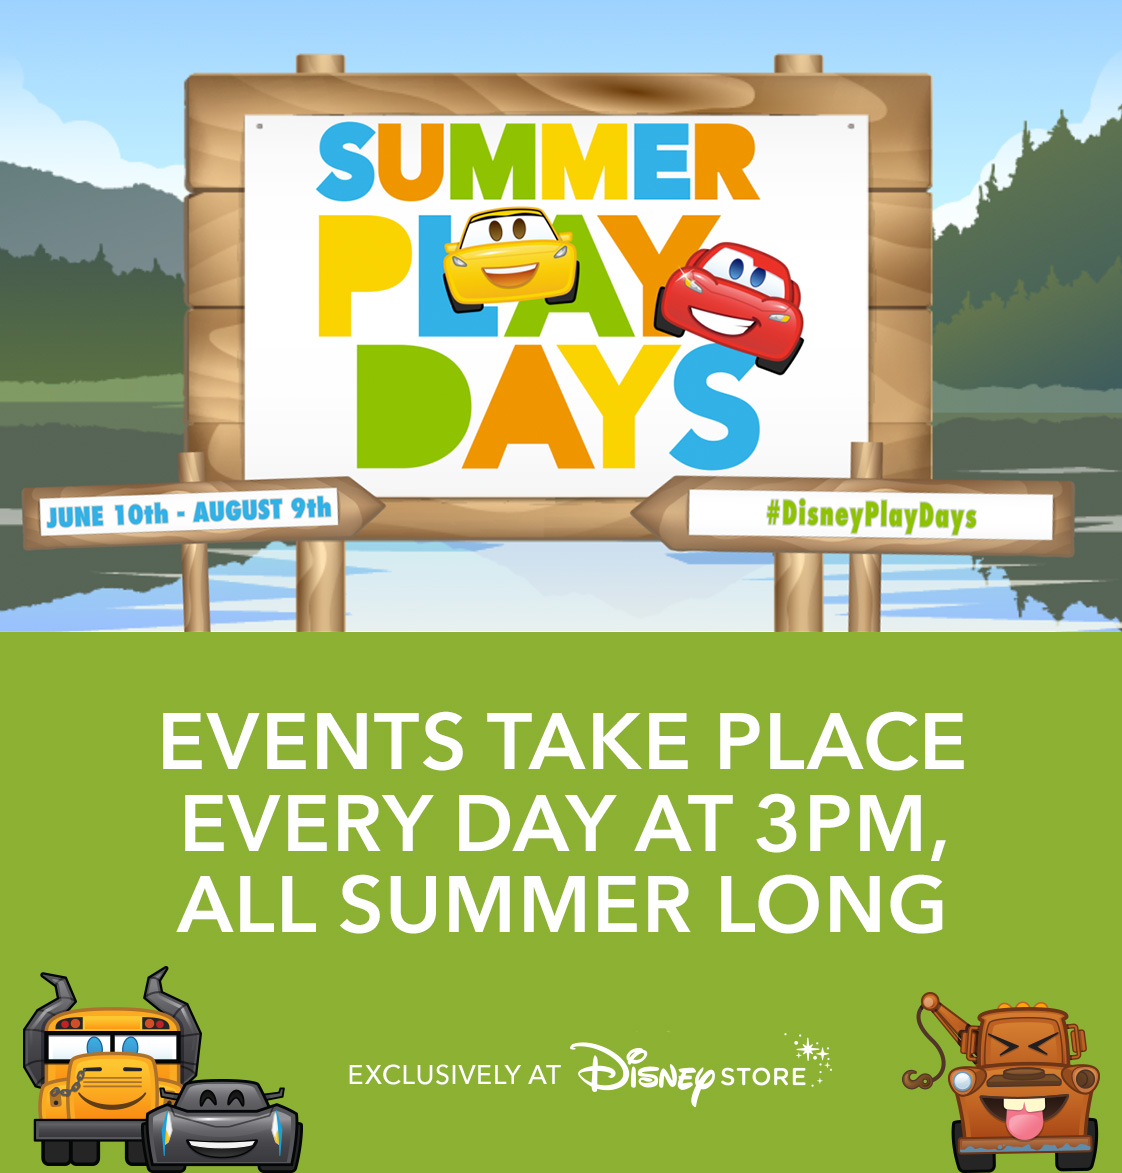 Events Take Place Every Day at 3PM, All Summer Long